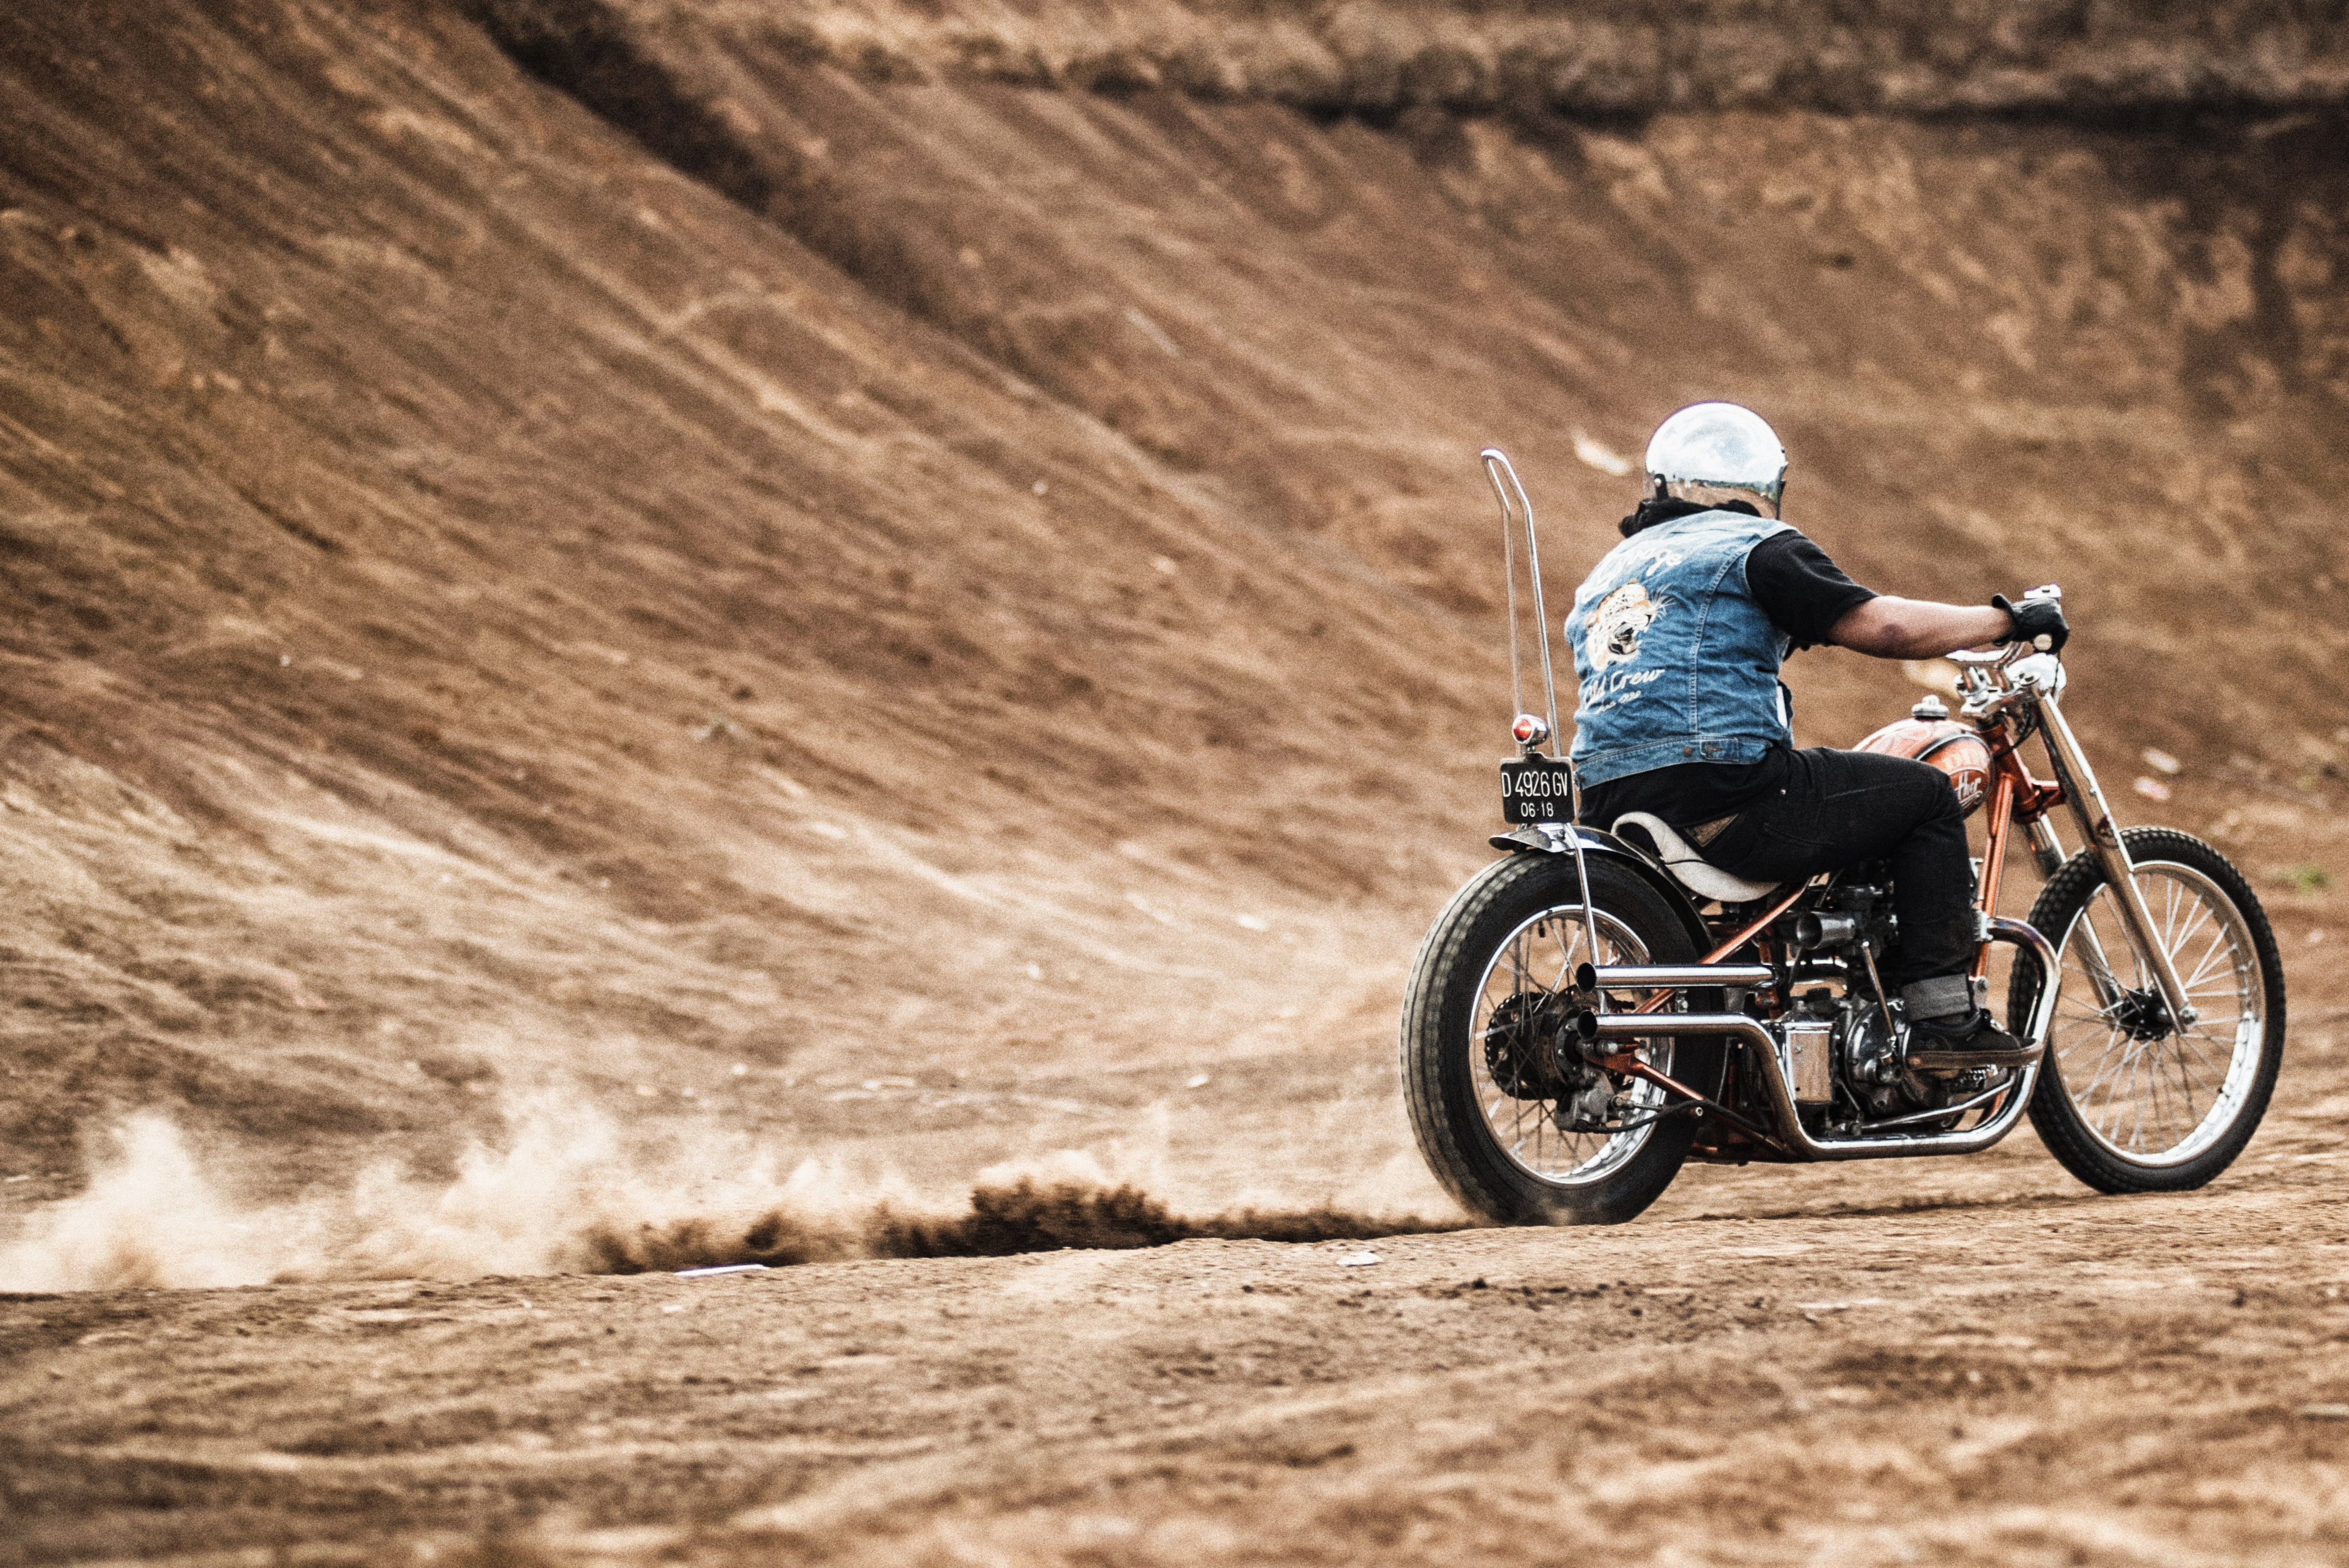 A motorcyclist in a denim jacket and reflective helmet riding his bike and leaving a trail of dust by a dirt mound